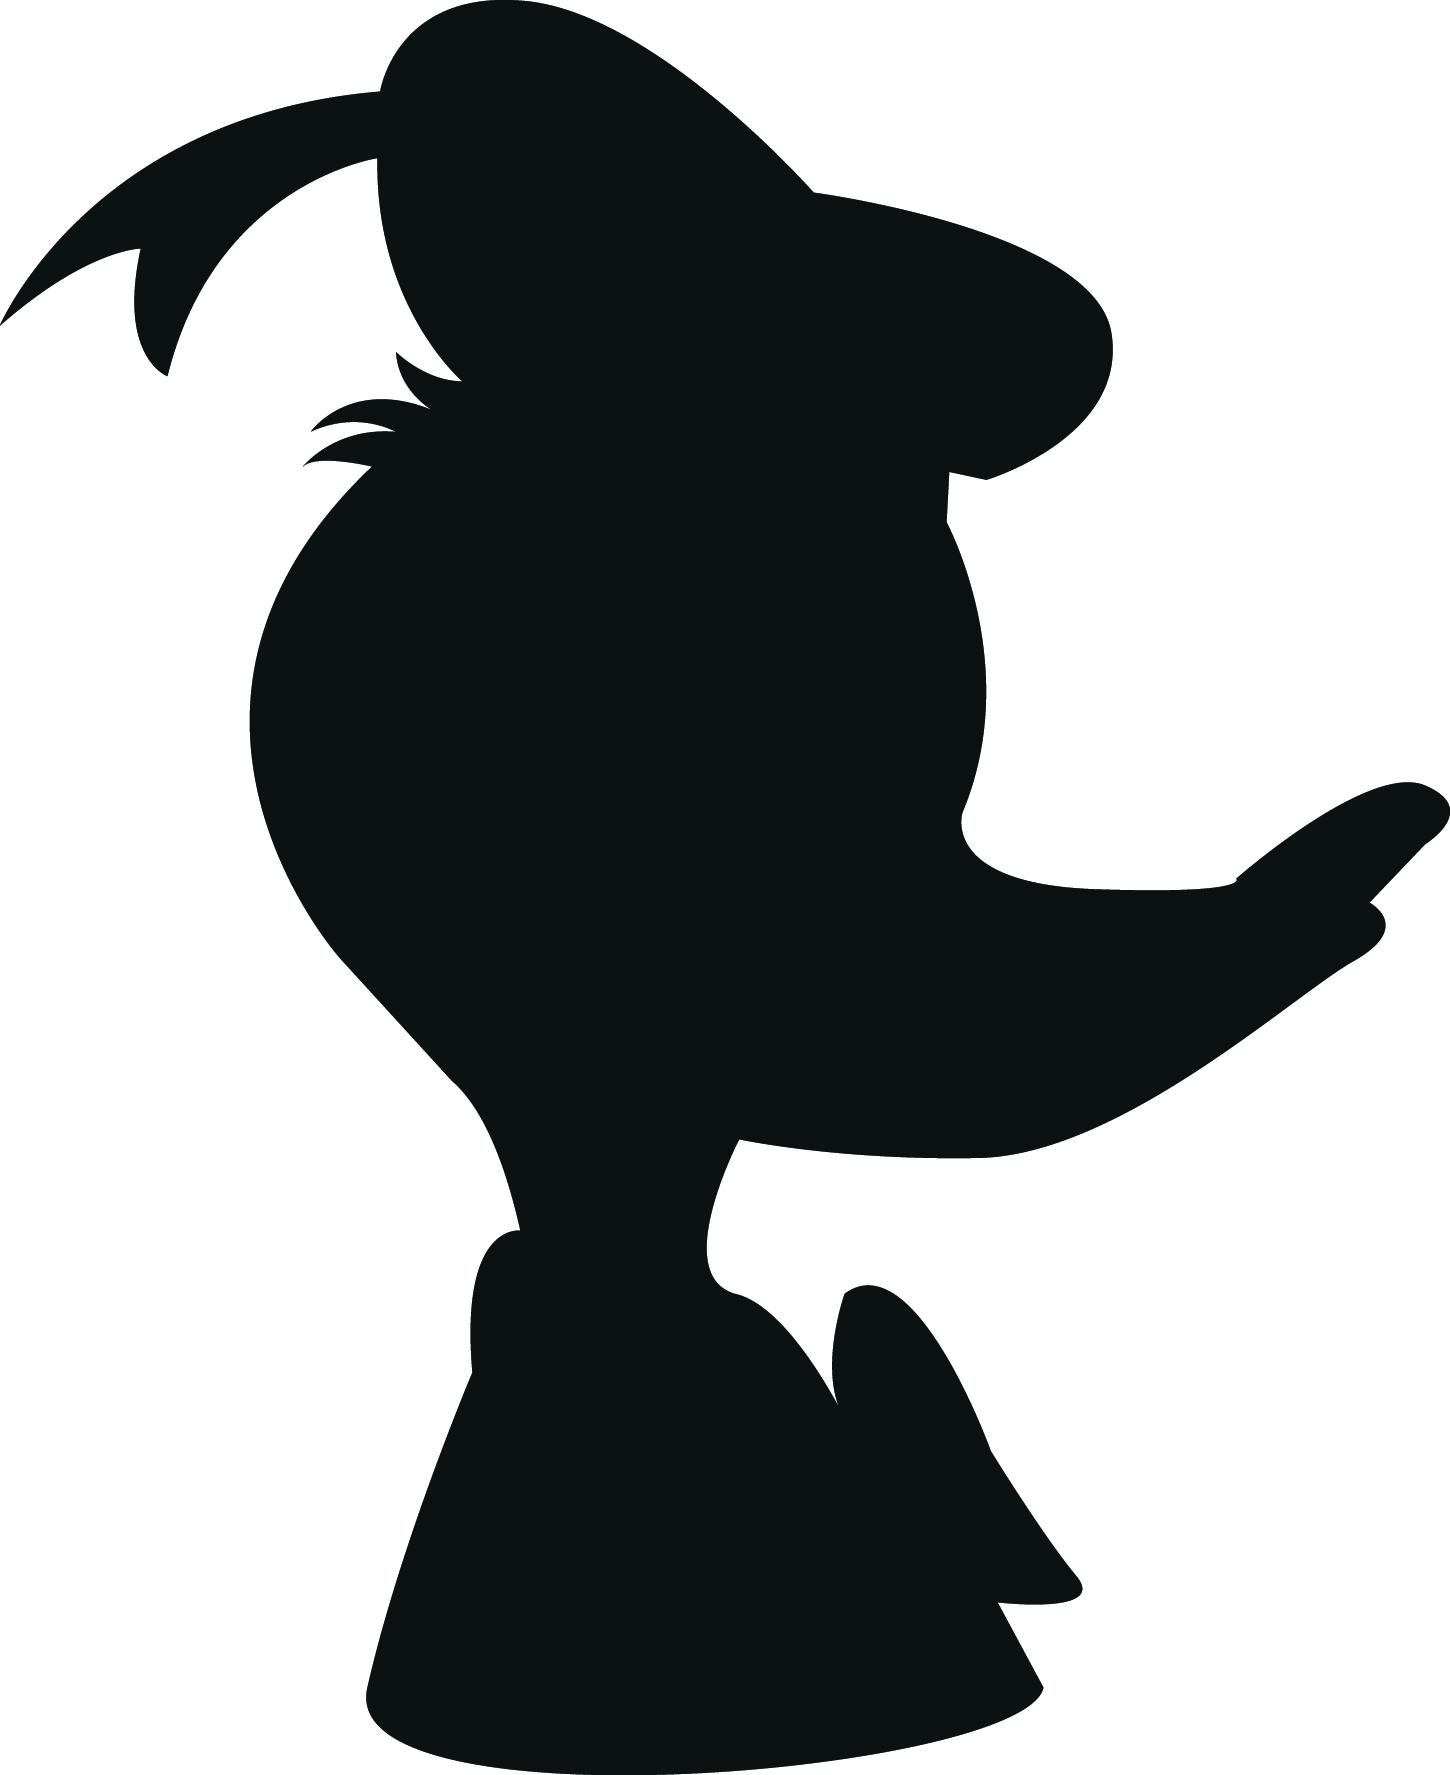 416 Donald Duck free clipart.